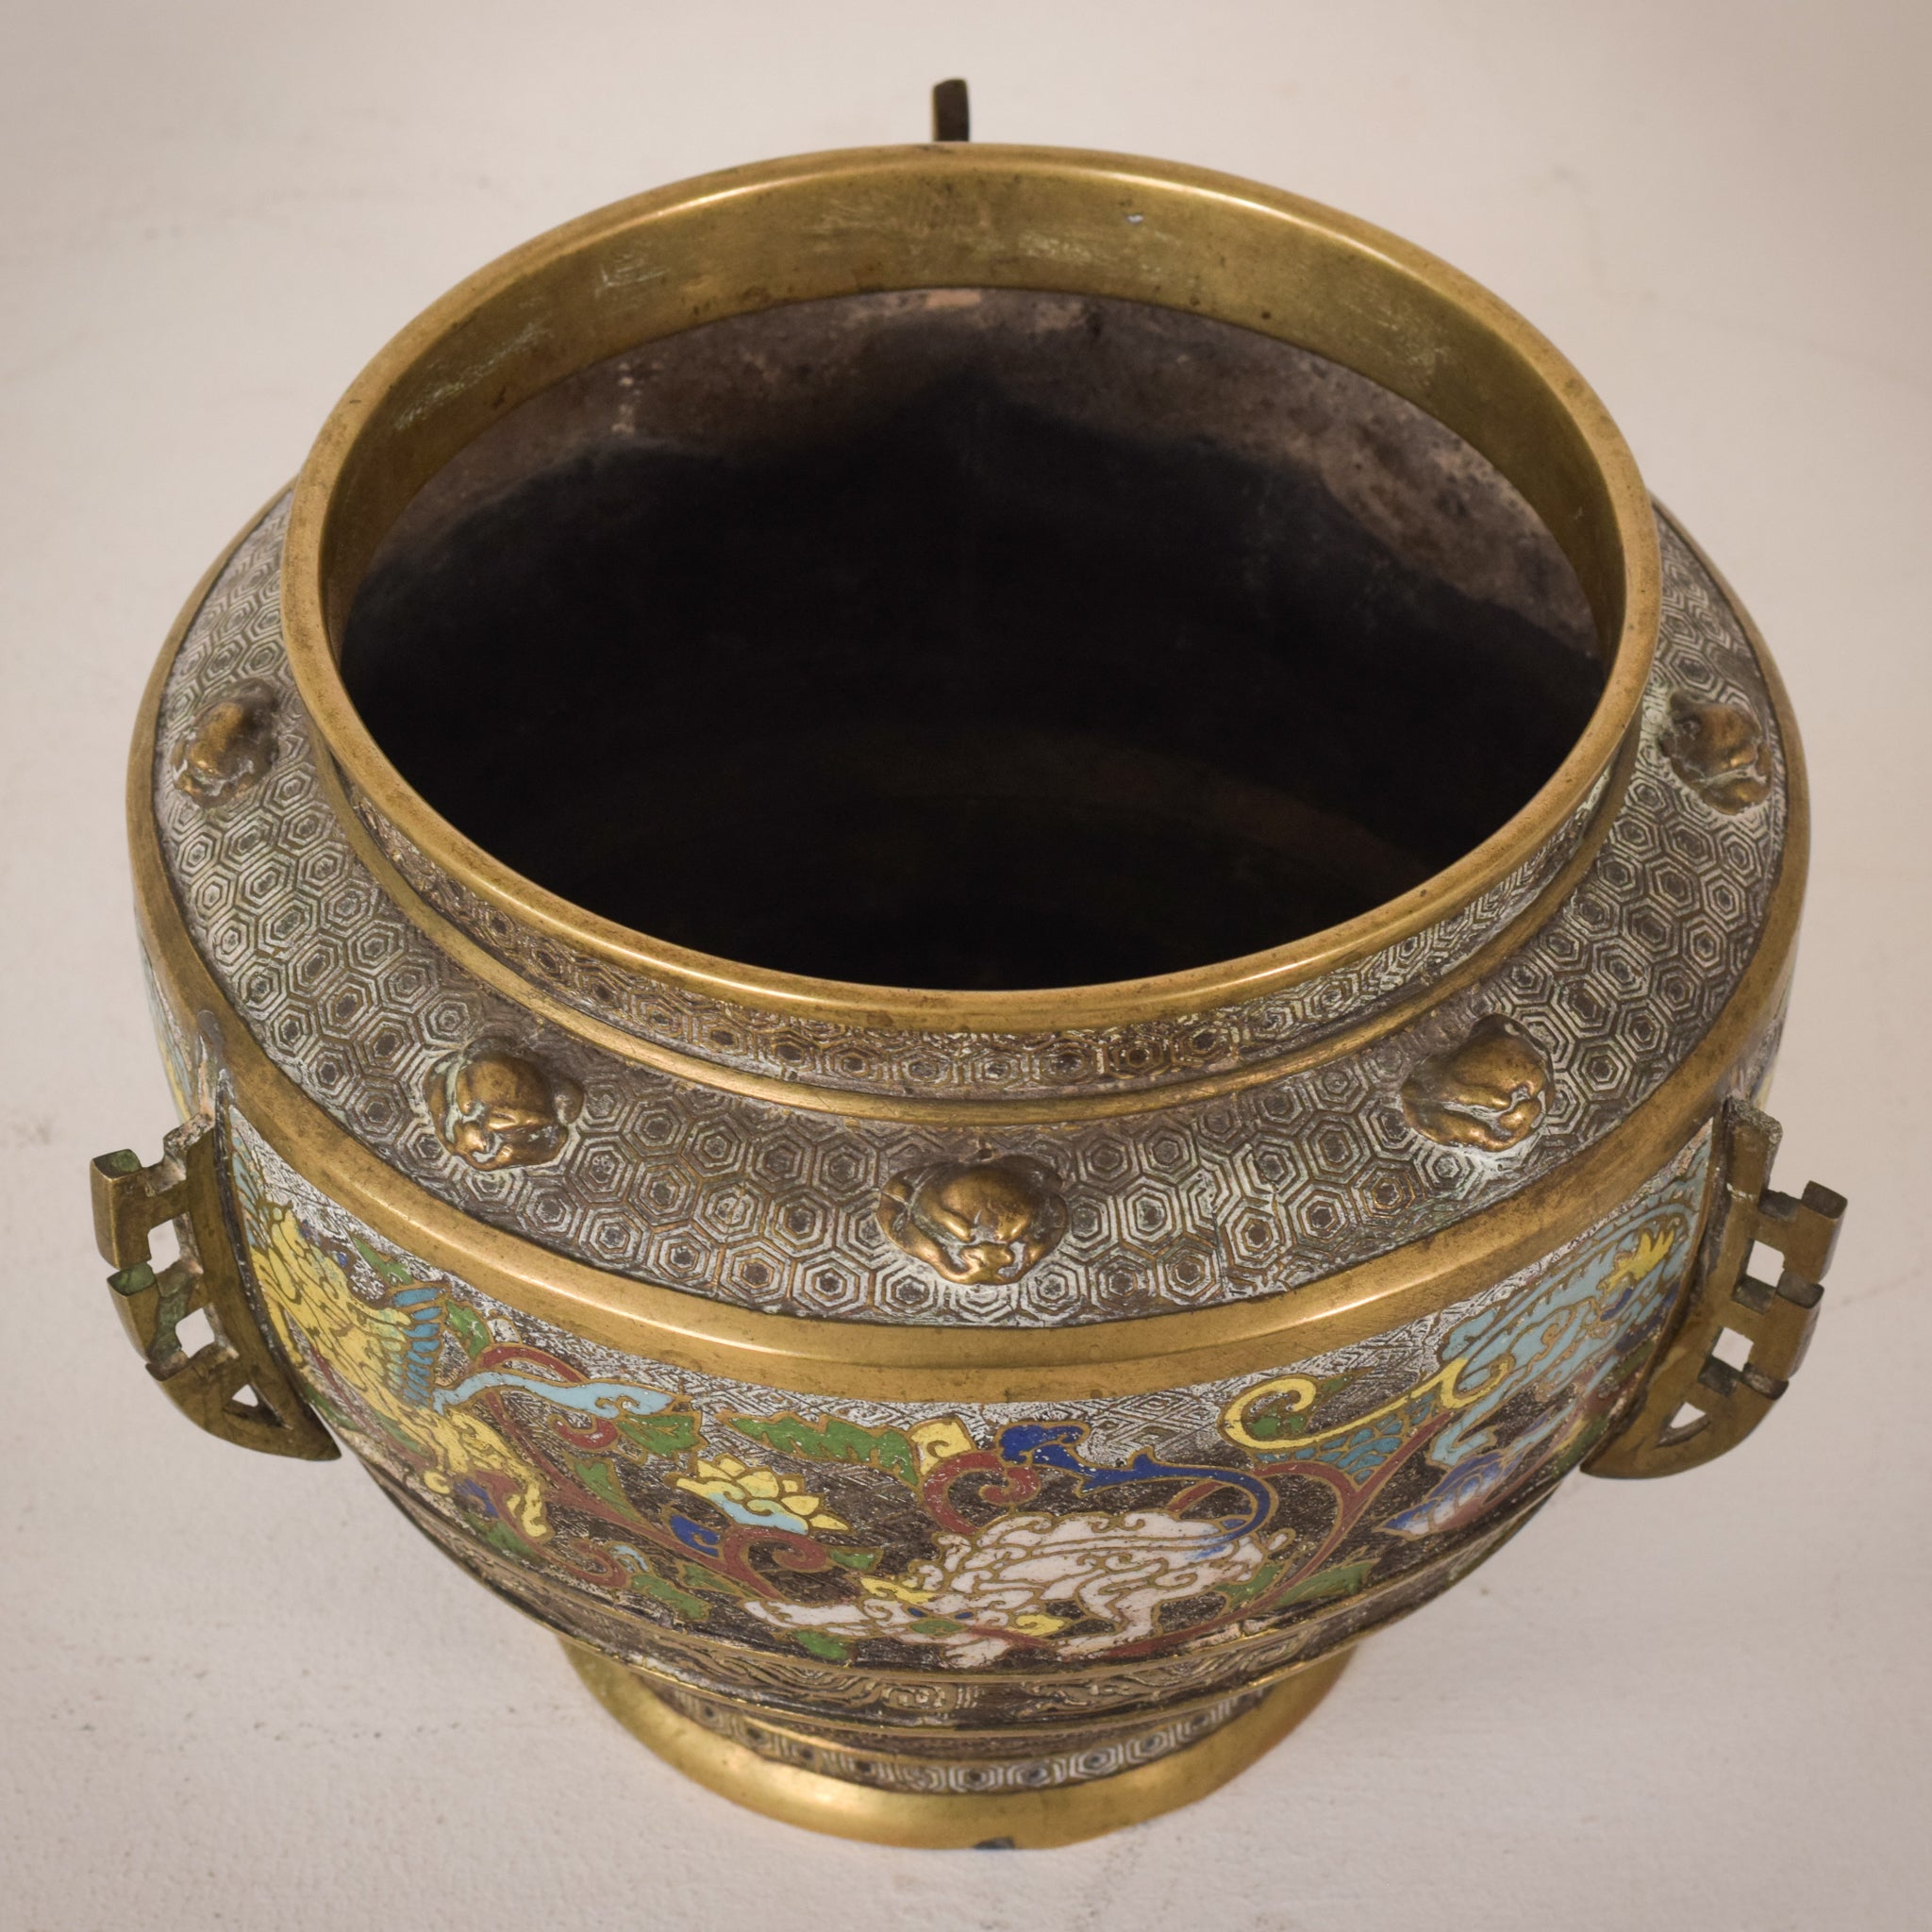 Signed Chinese Cloisonné Pot